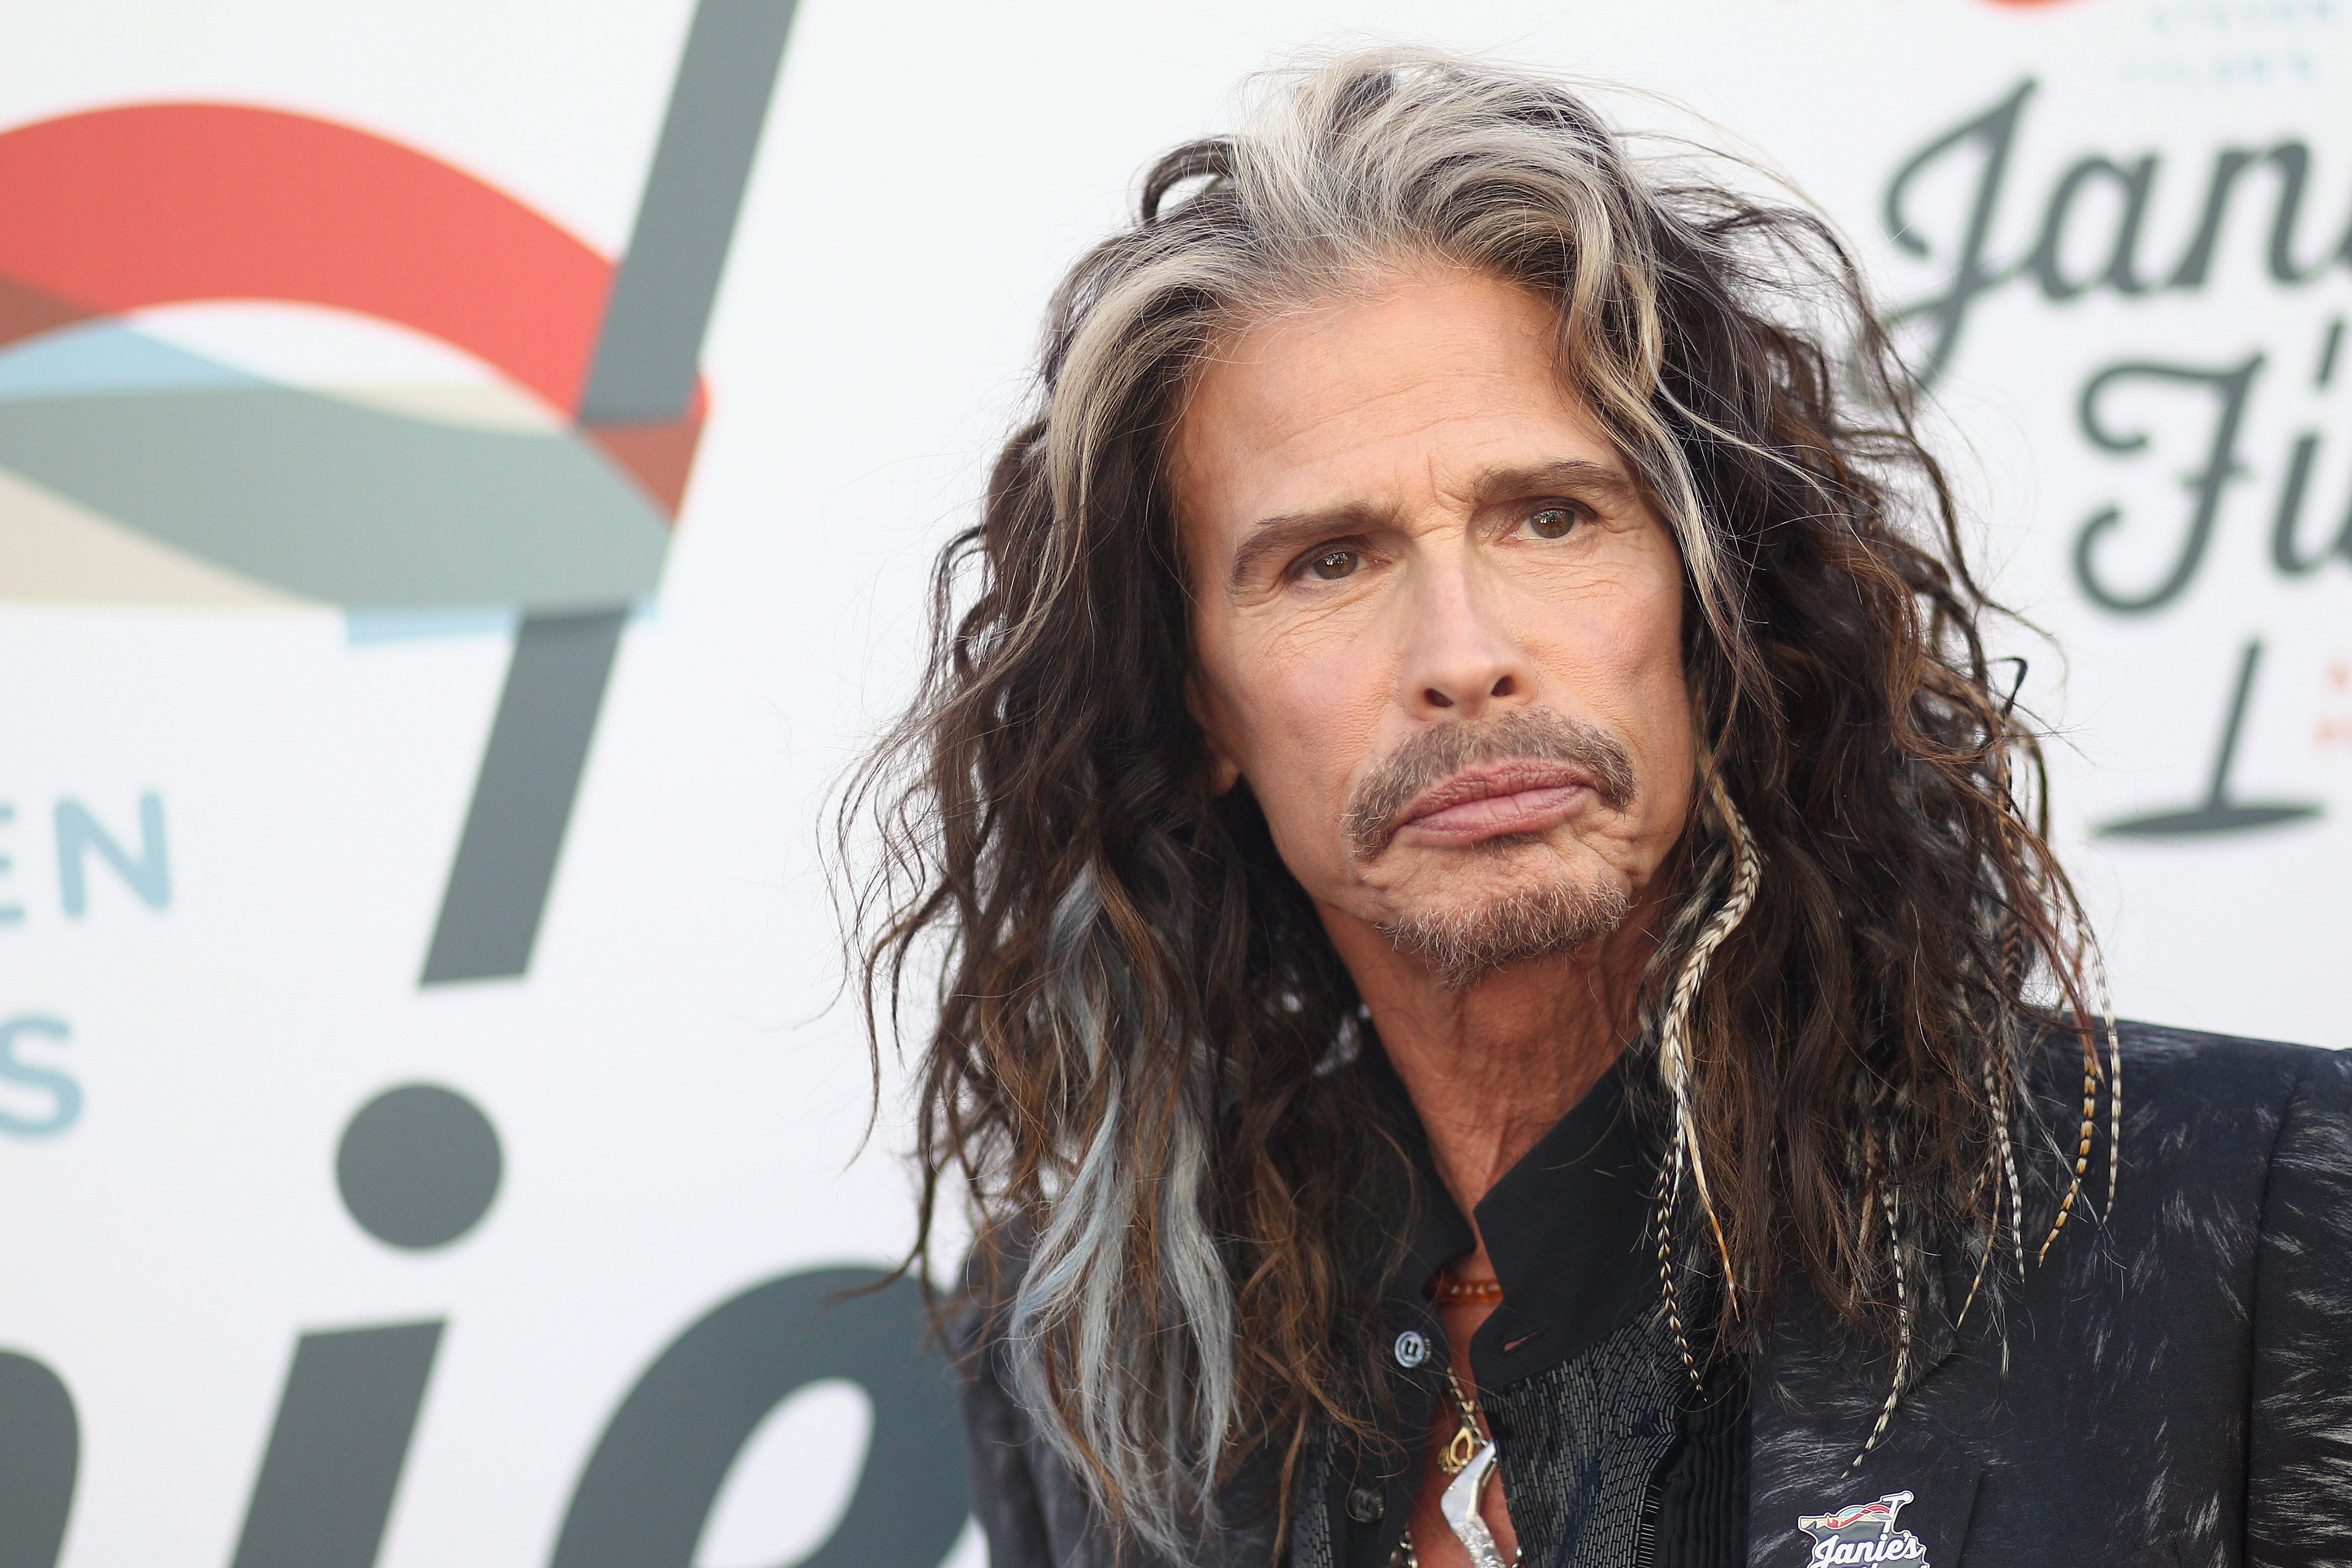 Steven Tyler at his Grammy Awards Viewing Party benefiting Janie's Fund | Photo: Getty Images